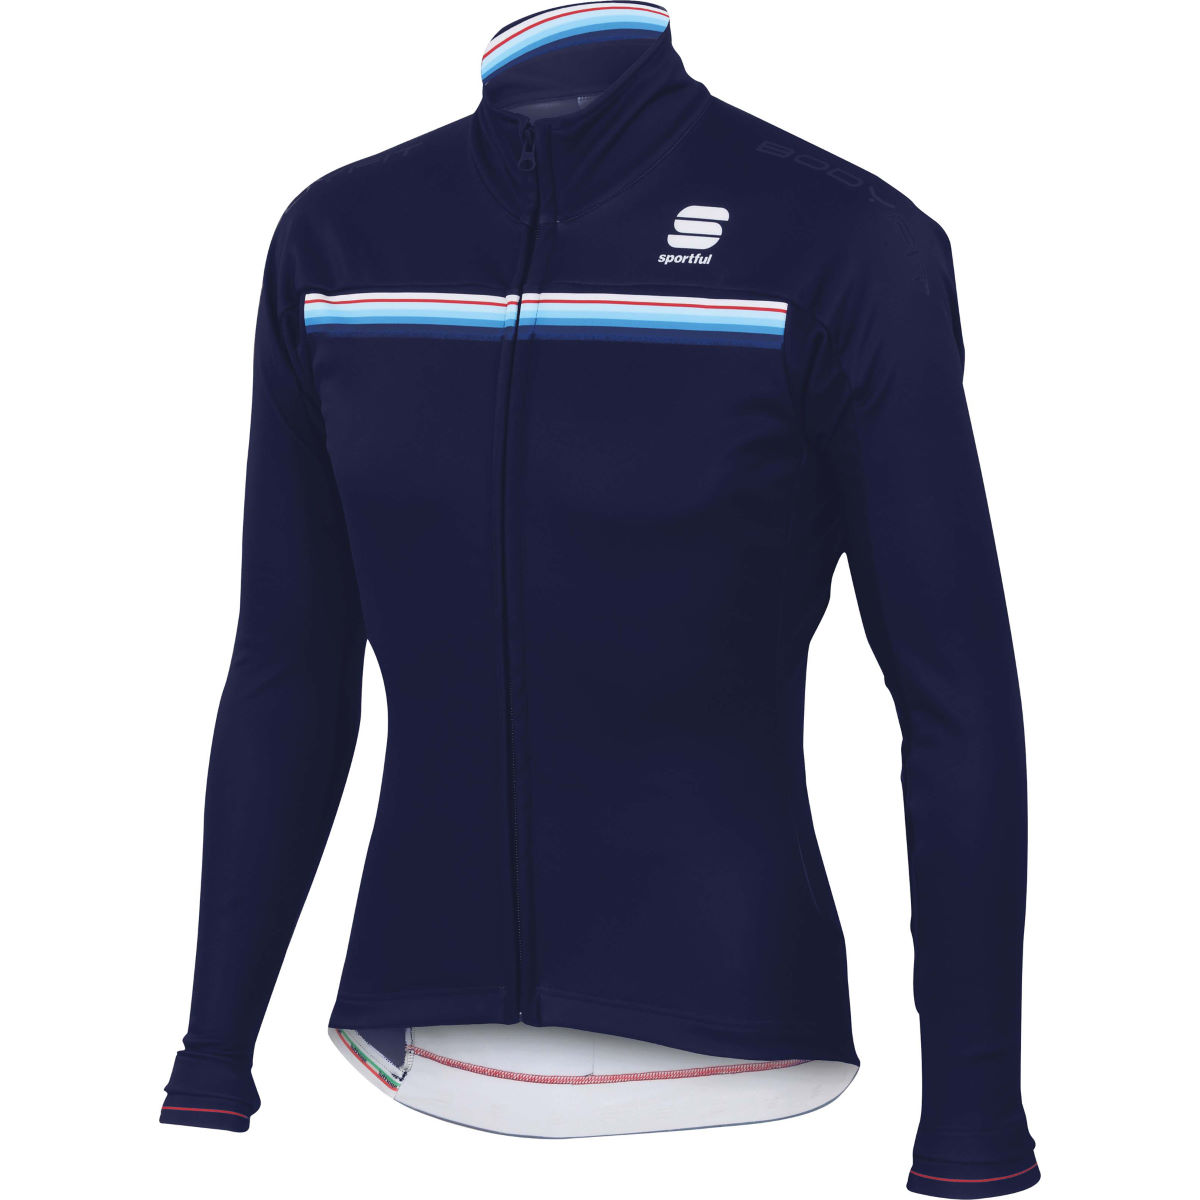 Sportful BodyFit Pro Windstopper Jacket AW14